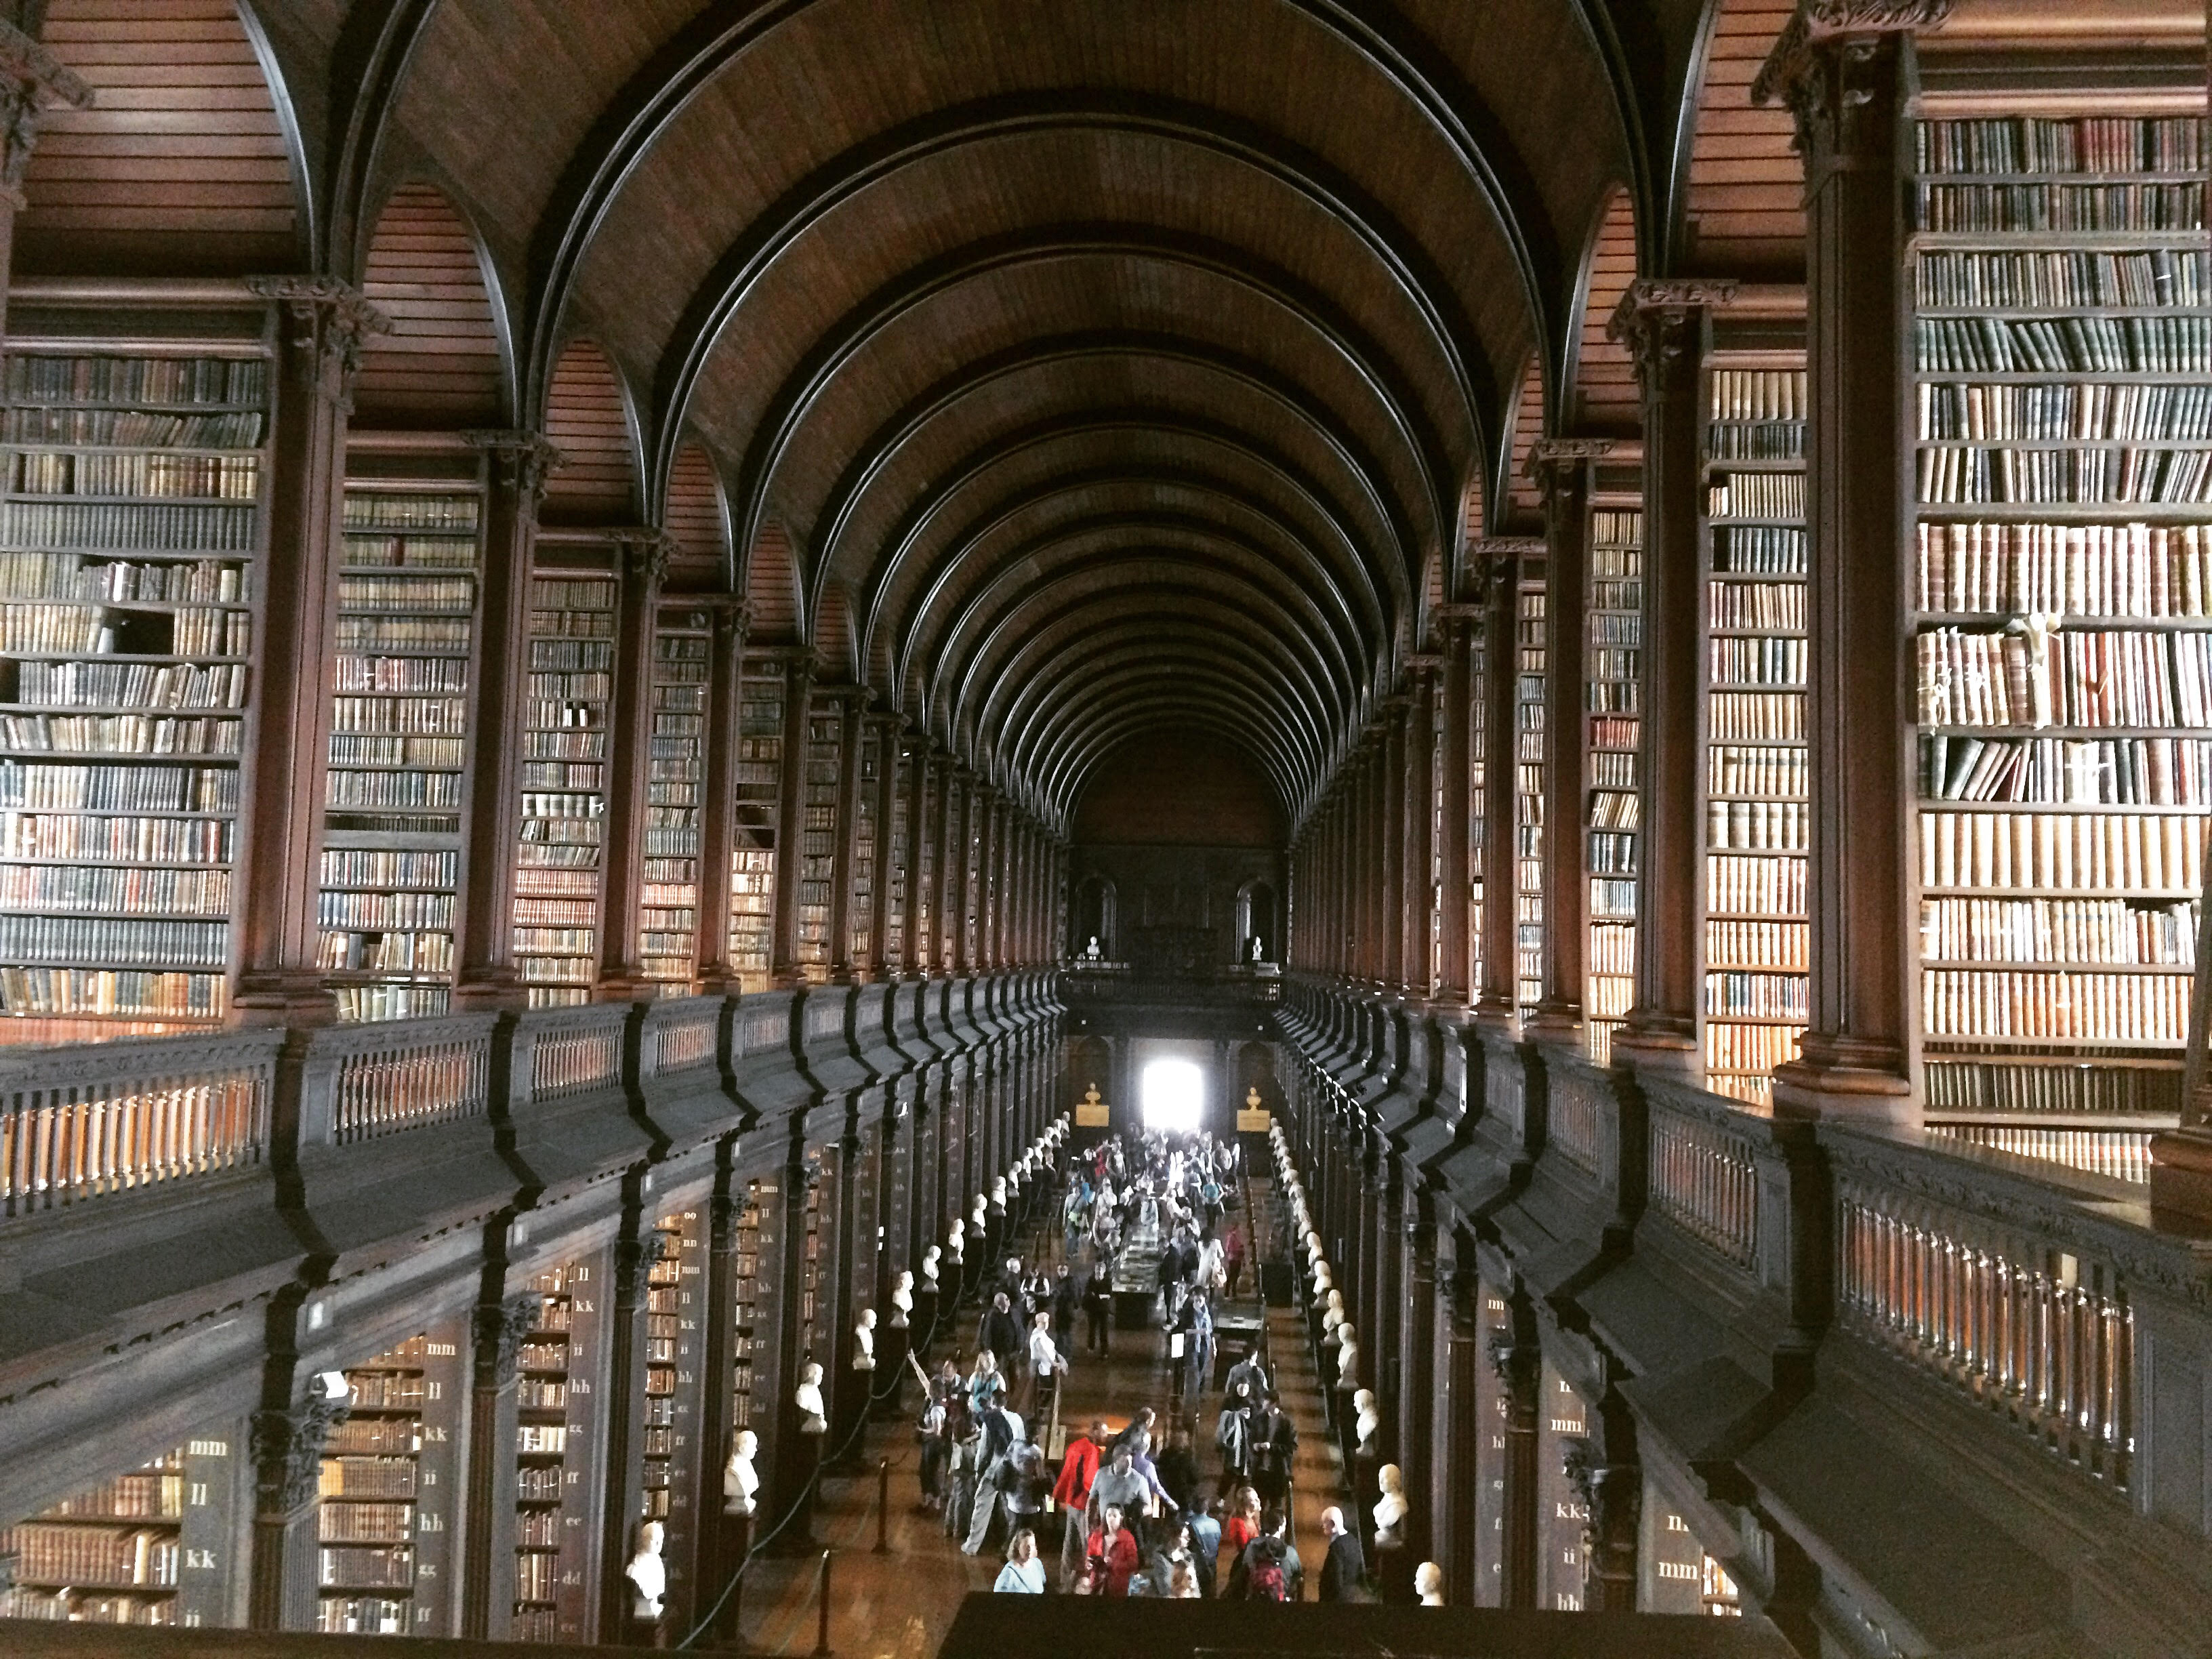 Wide angle shot of interior of Old Library at Trinity College in Dublin, Ireland.